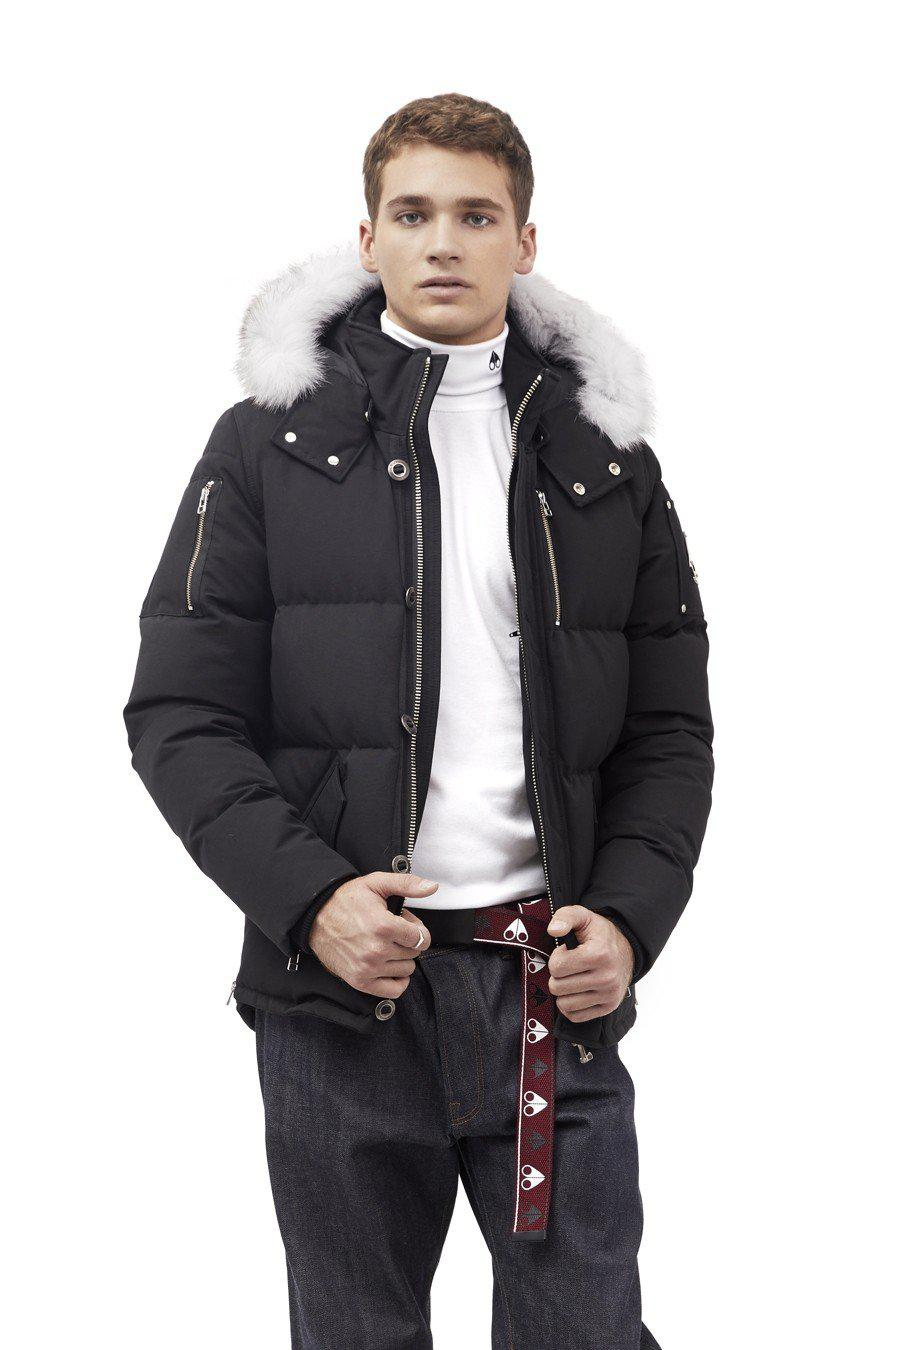 Moose Knuckles 3Q Men Jacket-Jackets-Classic fashion CF13-S-Black/White fur-Classic fashion CF13